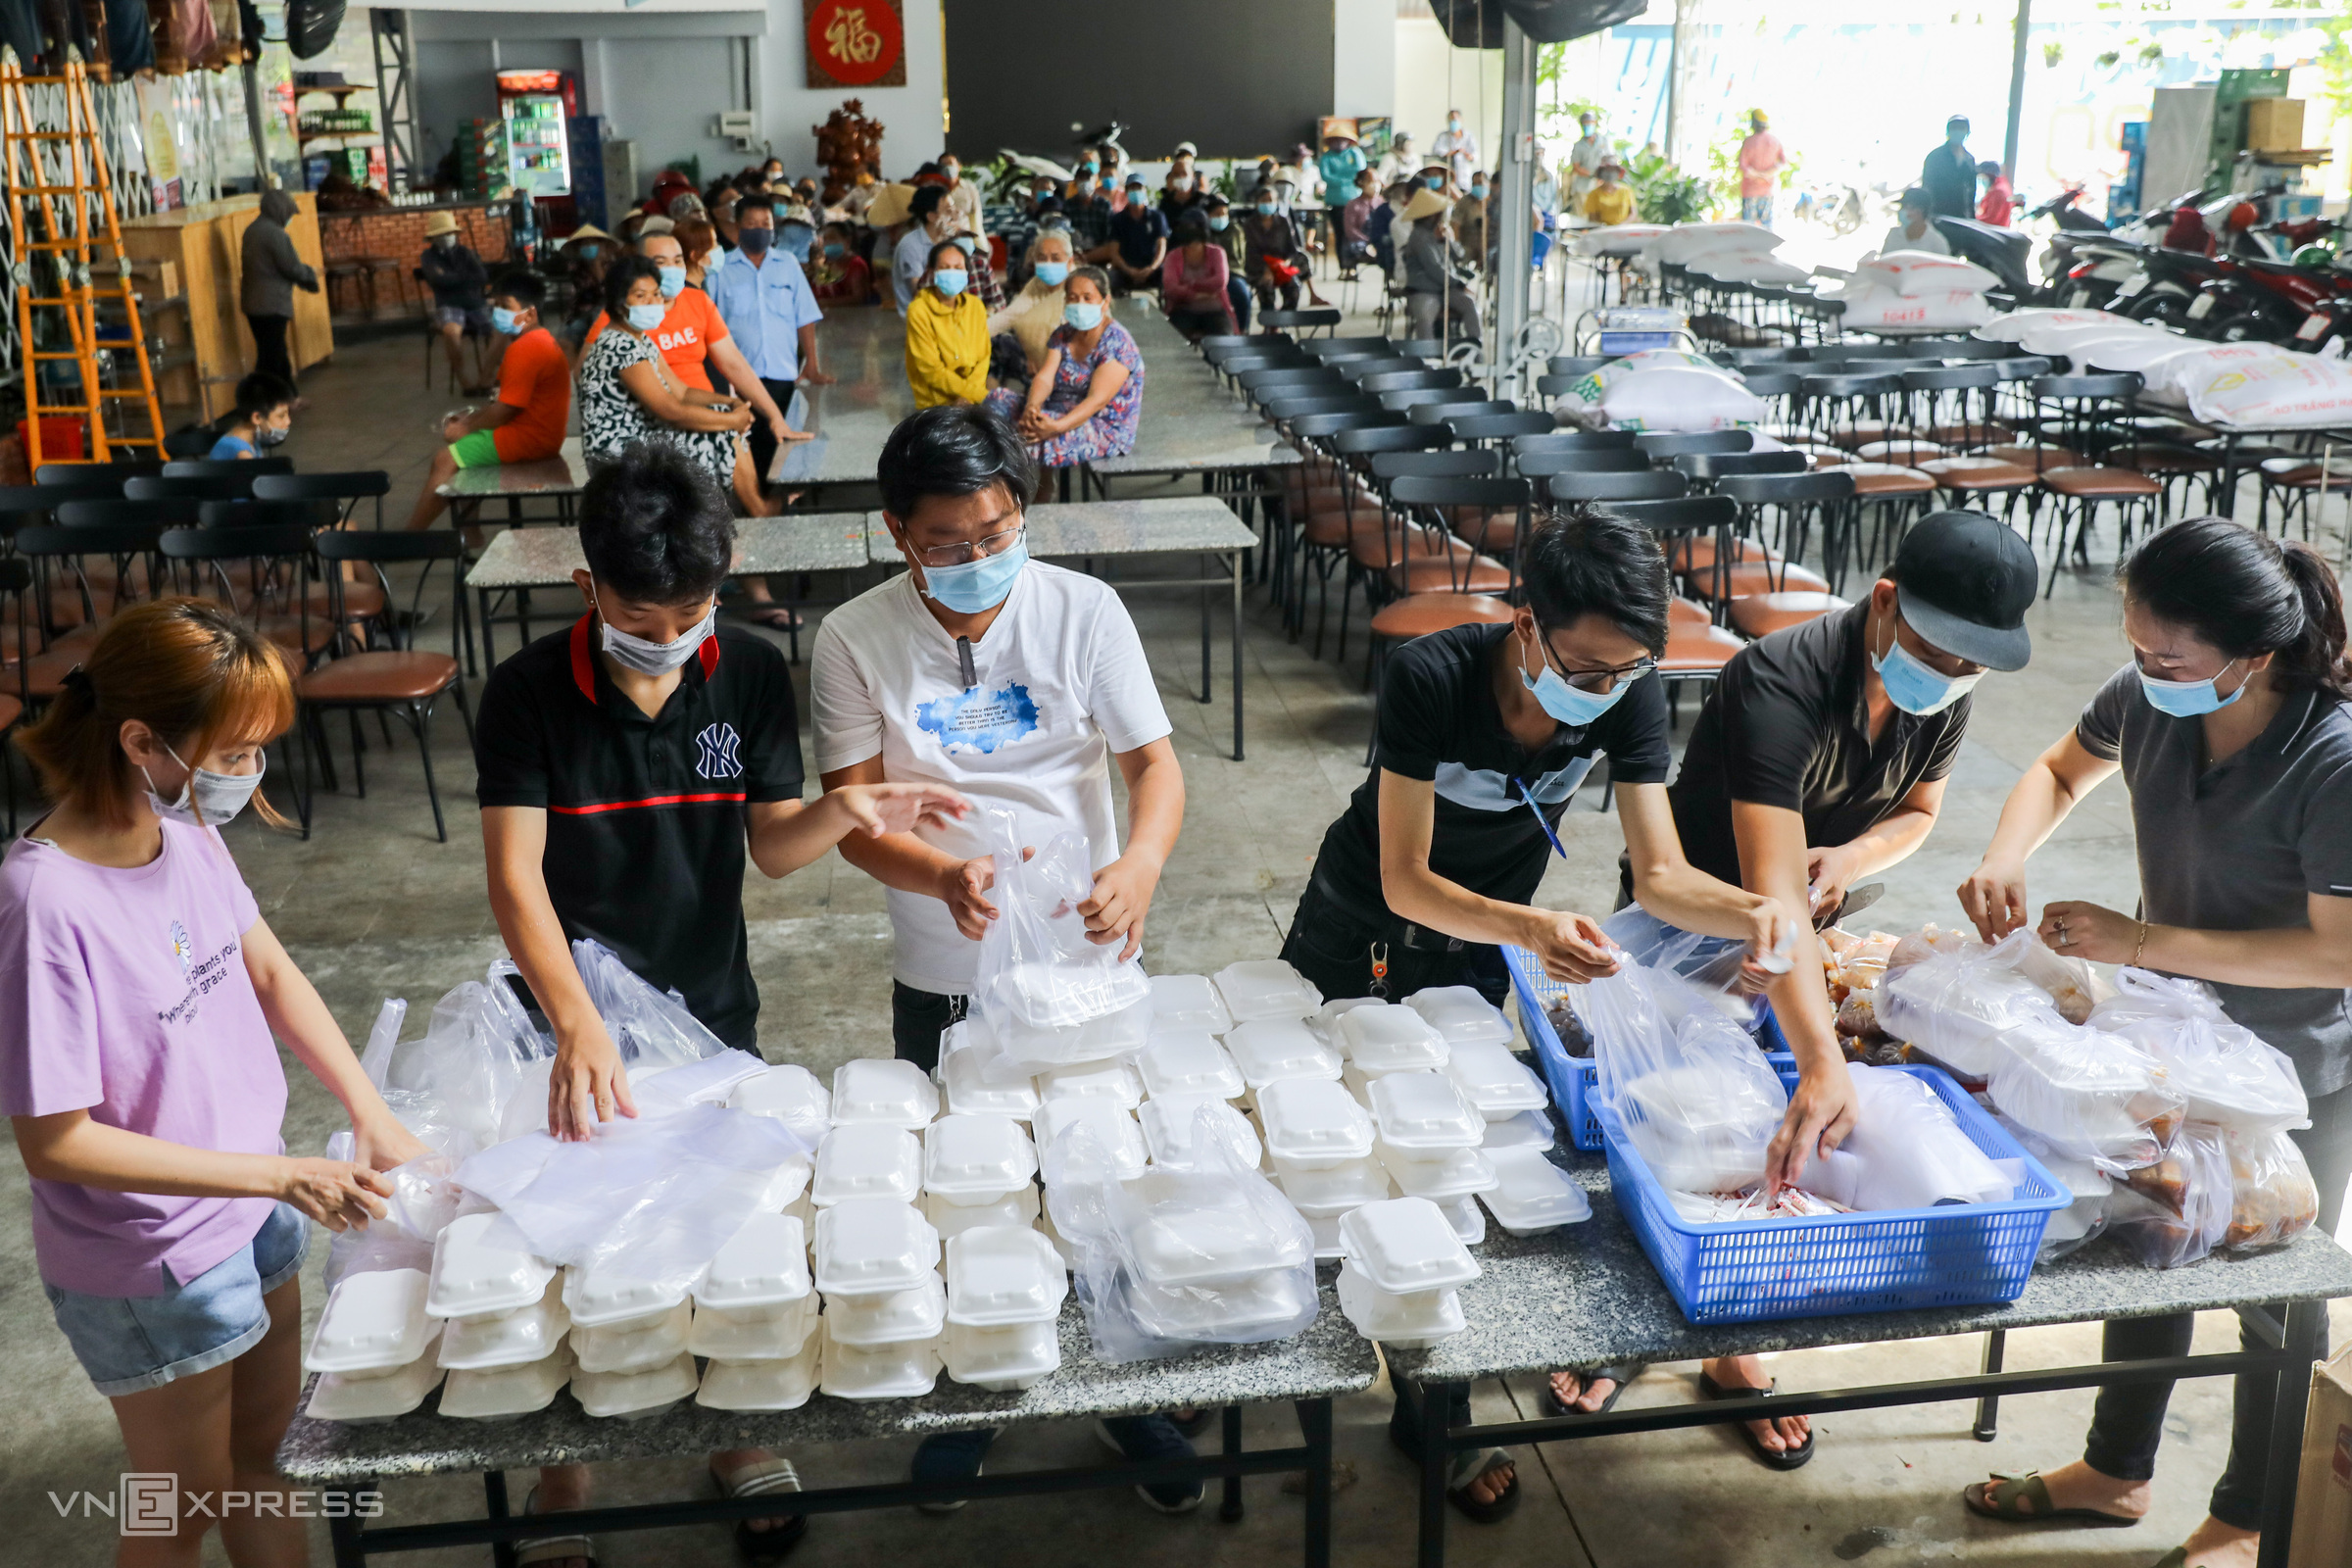 Amid Covid-19 closures, Saigonese step out to help out